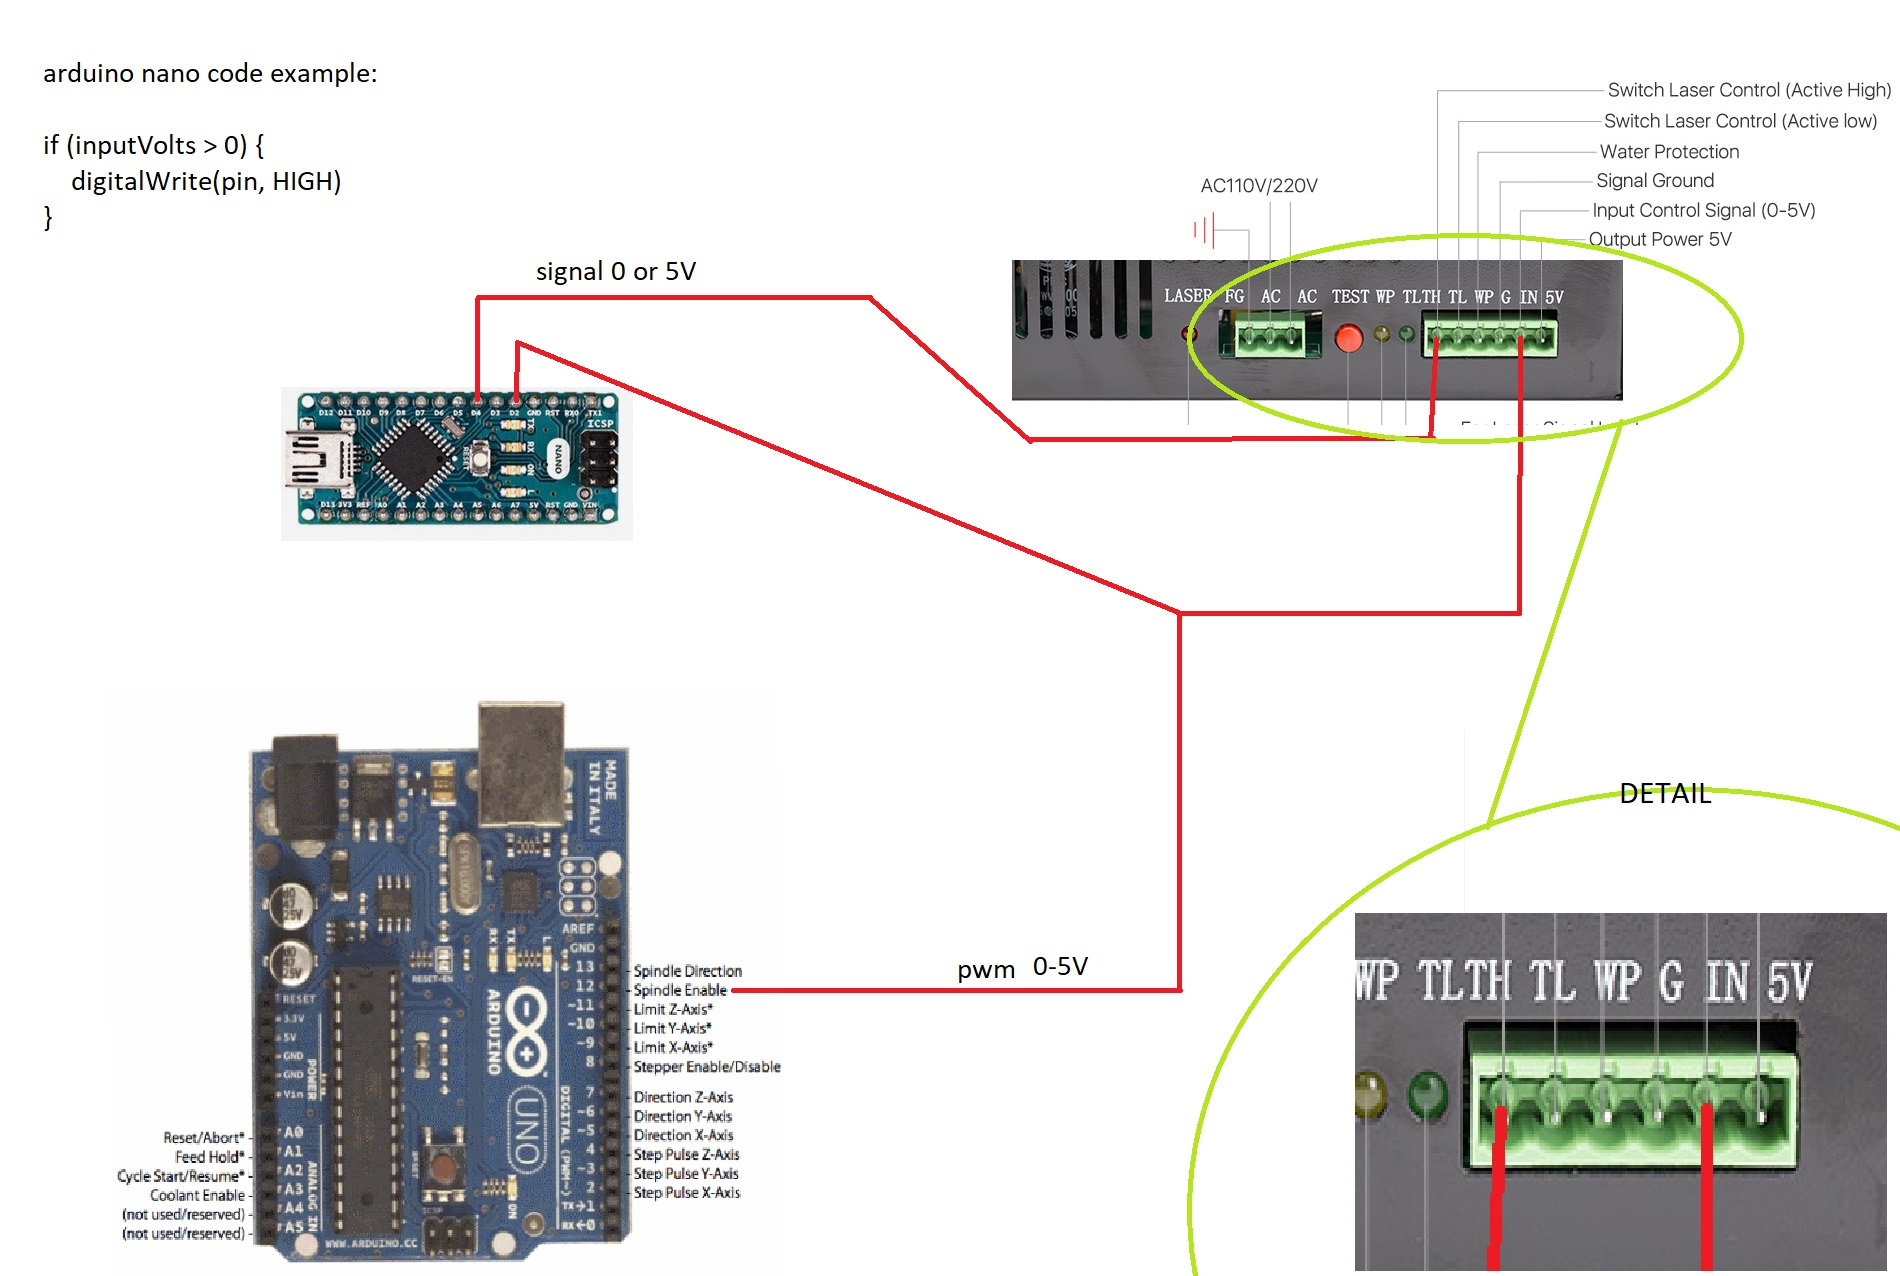 hight resolution of how to connect a co2 laser power supply to arduino issue 1263 co2 laser wiring diagram